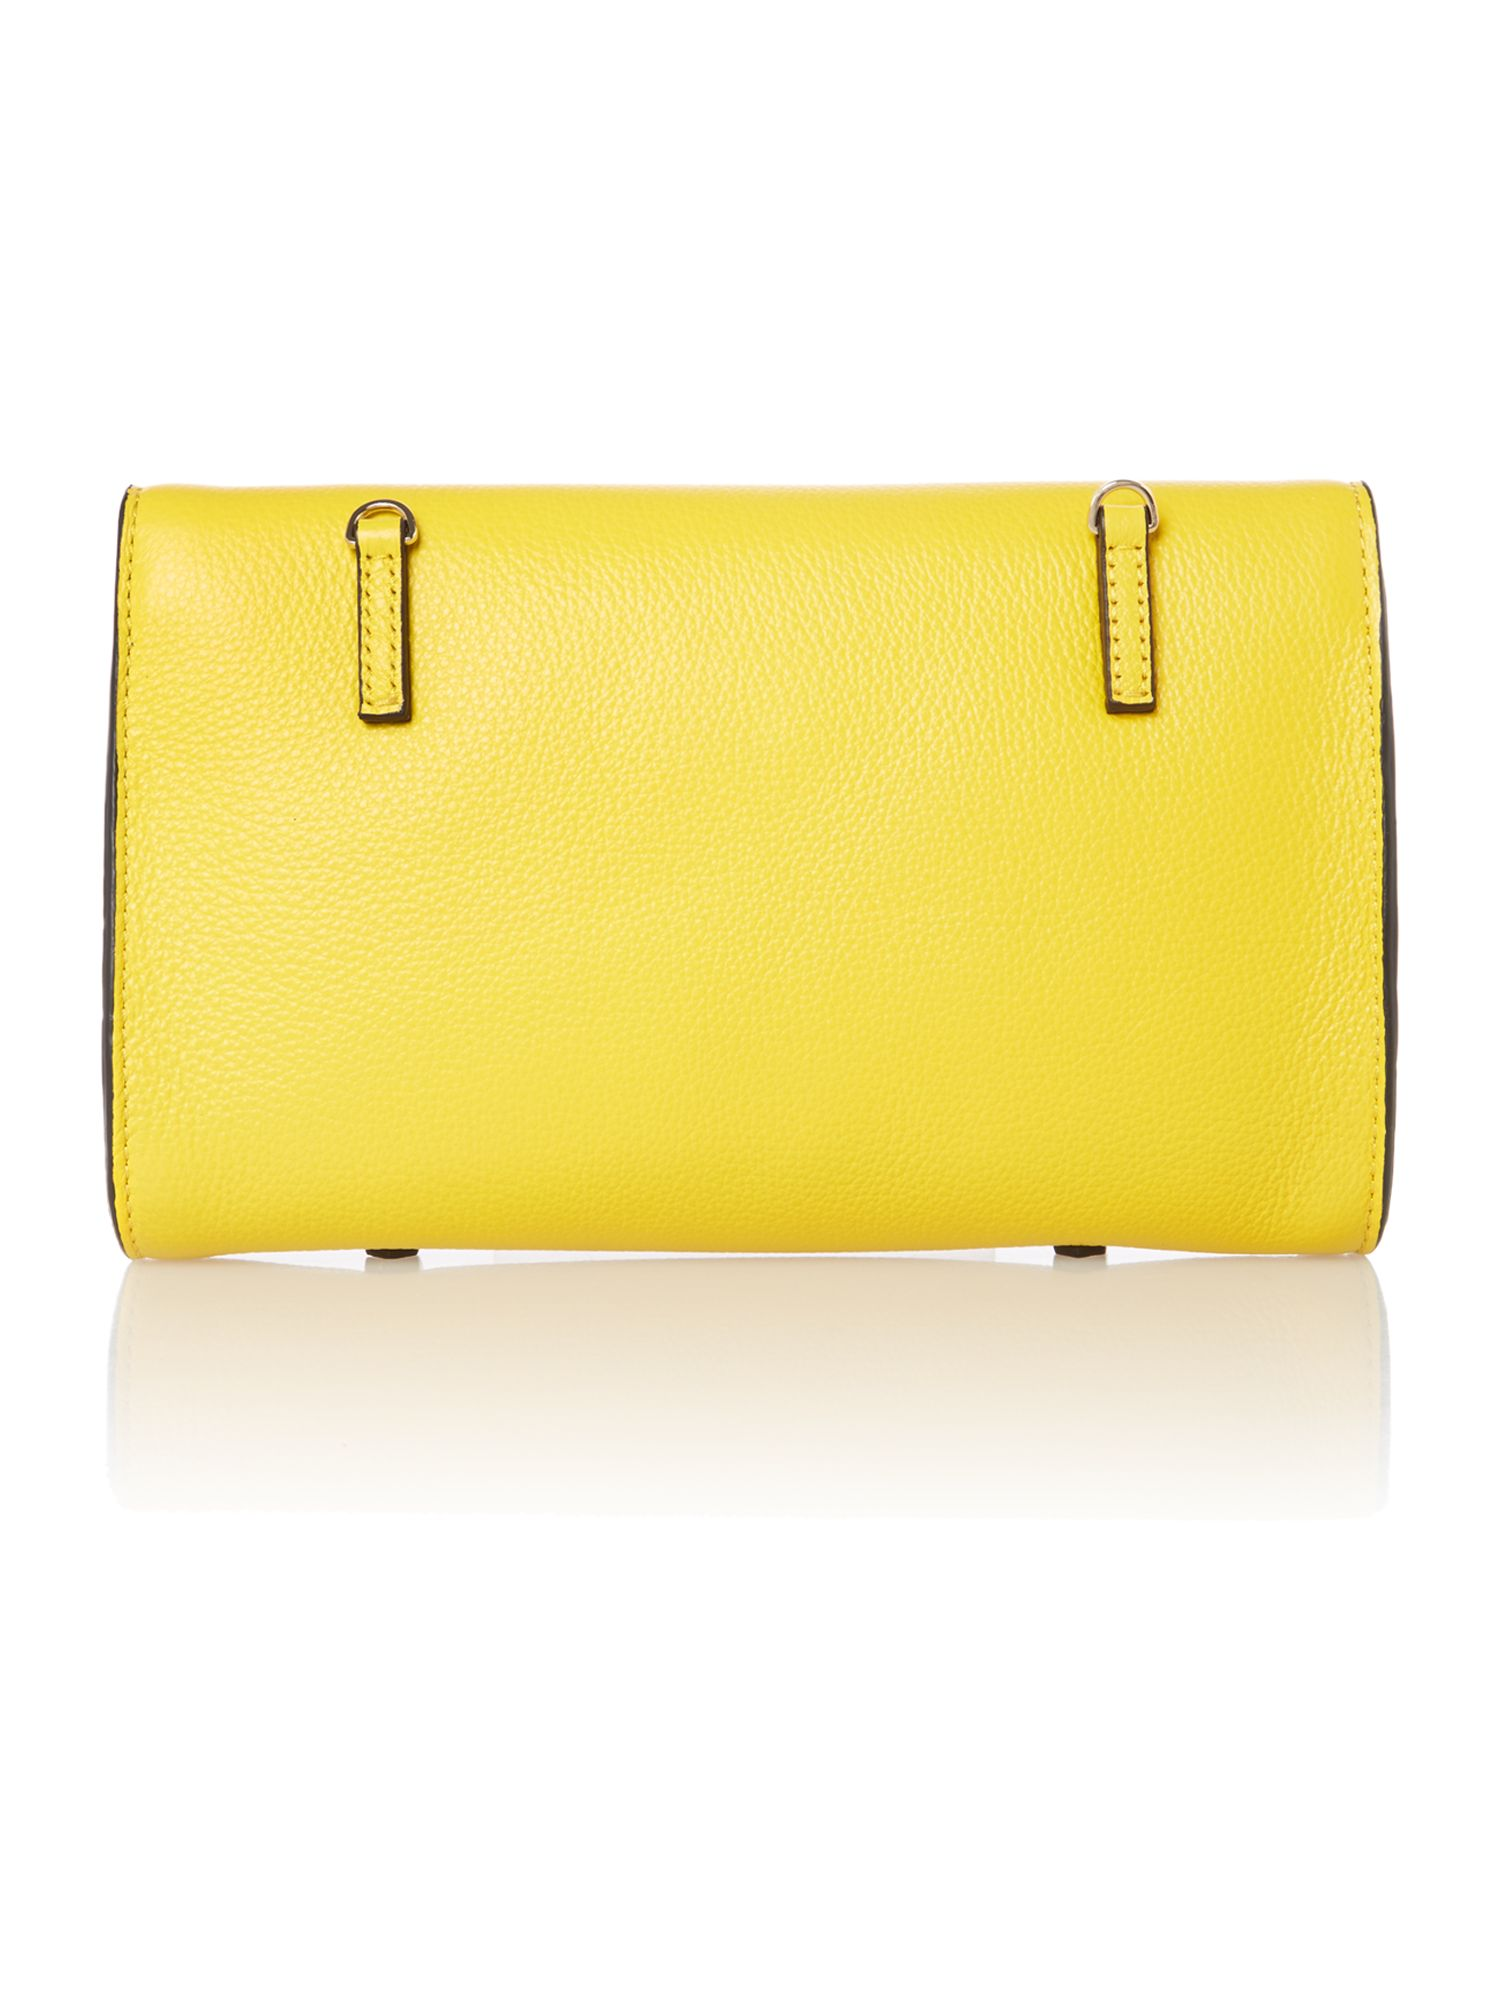 Celeste yellow small cross body bag